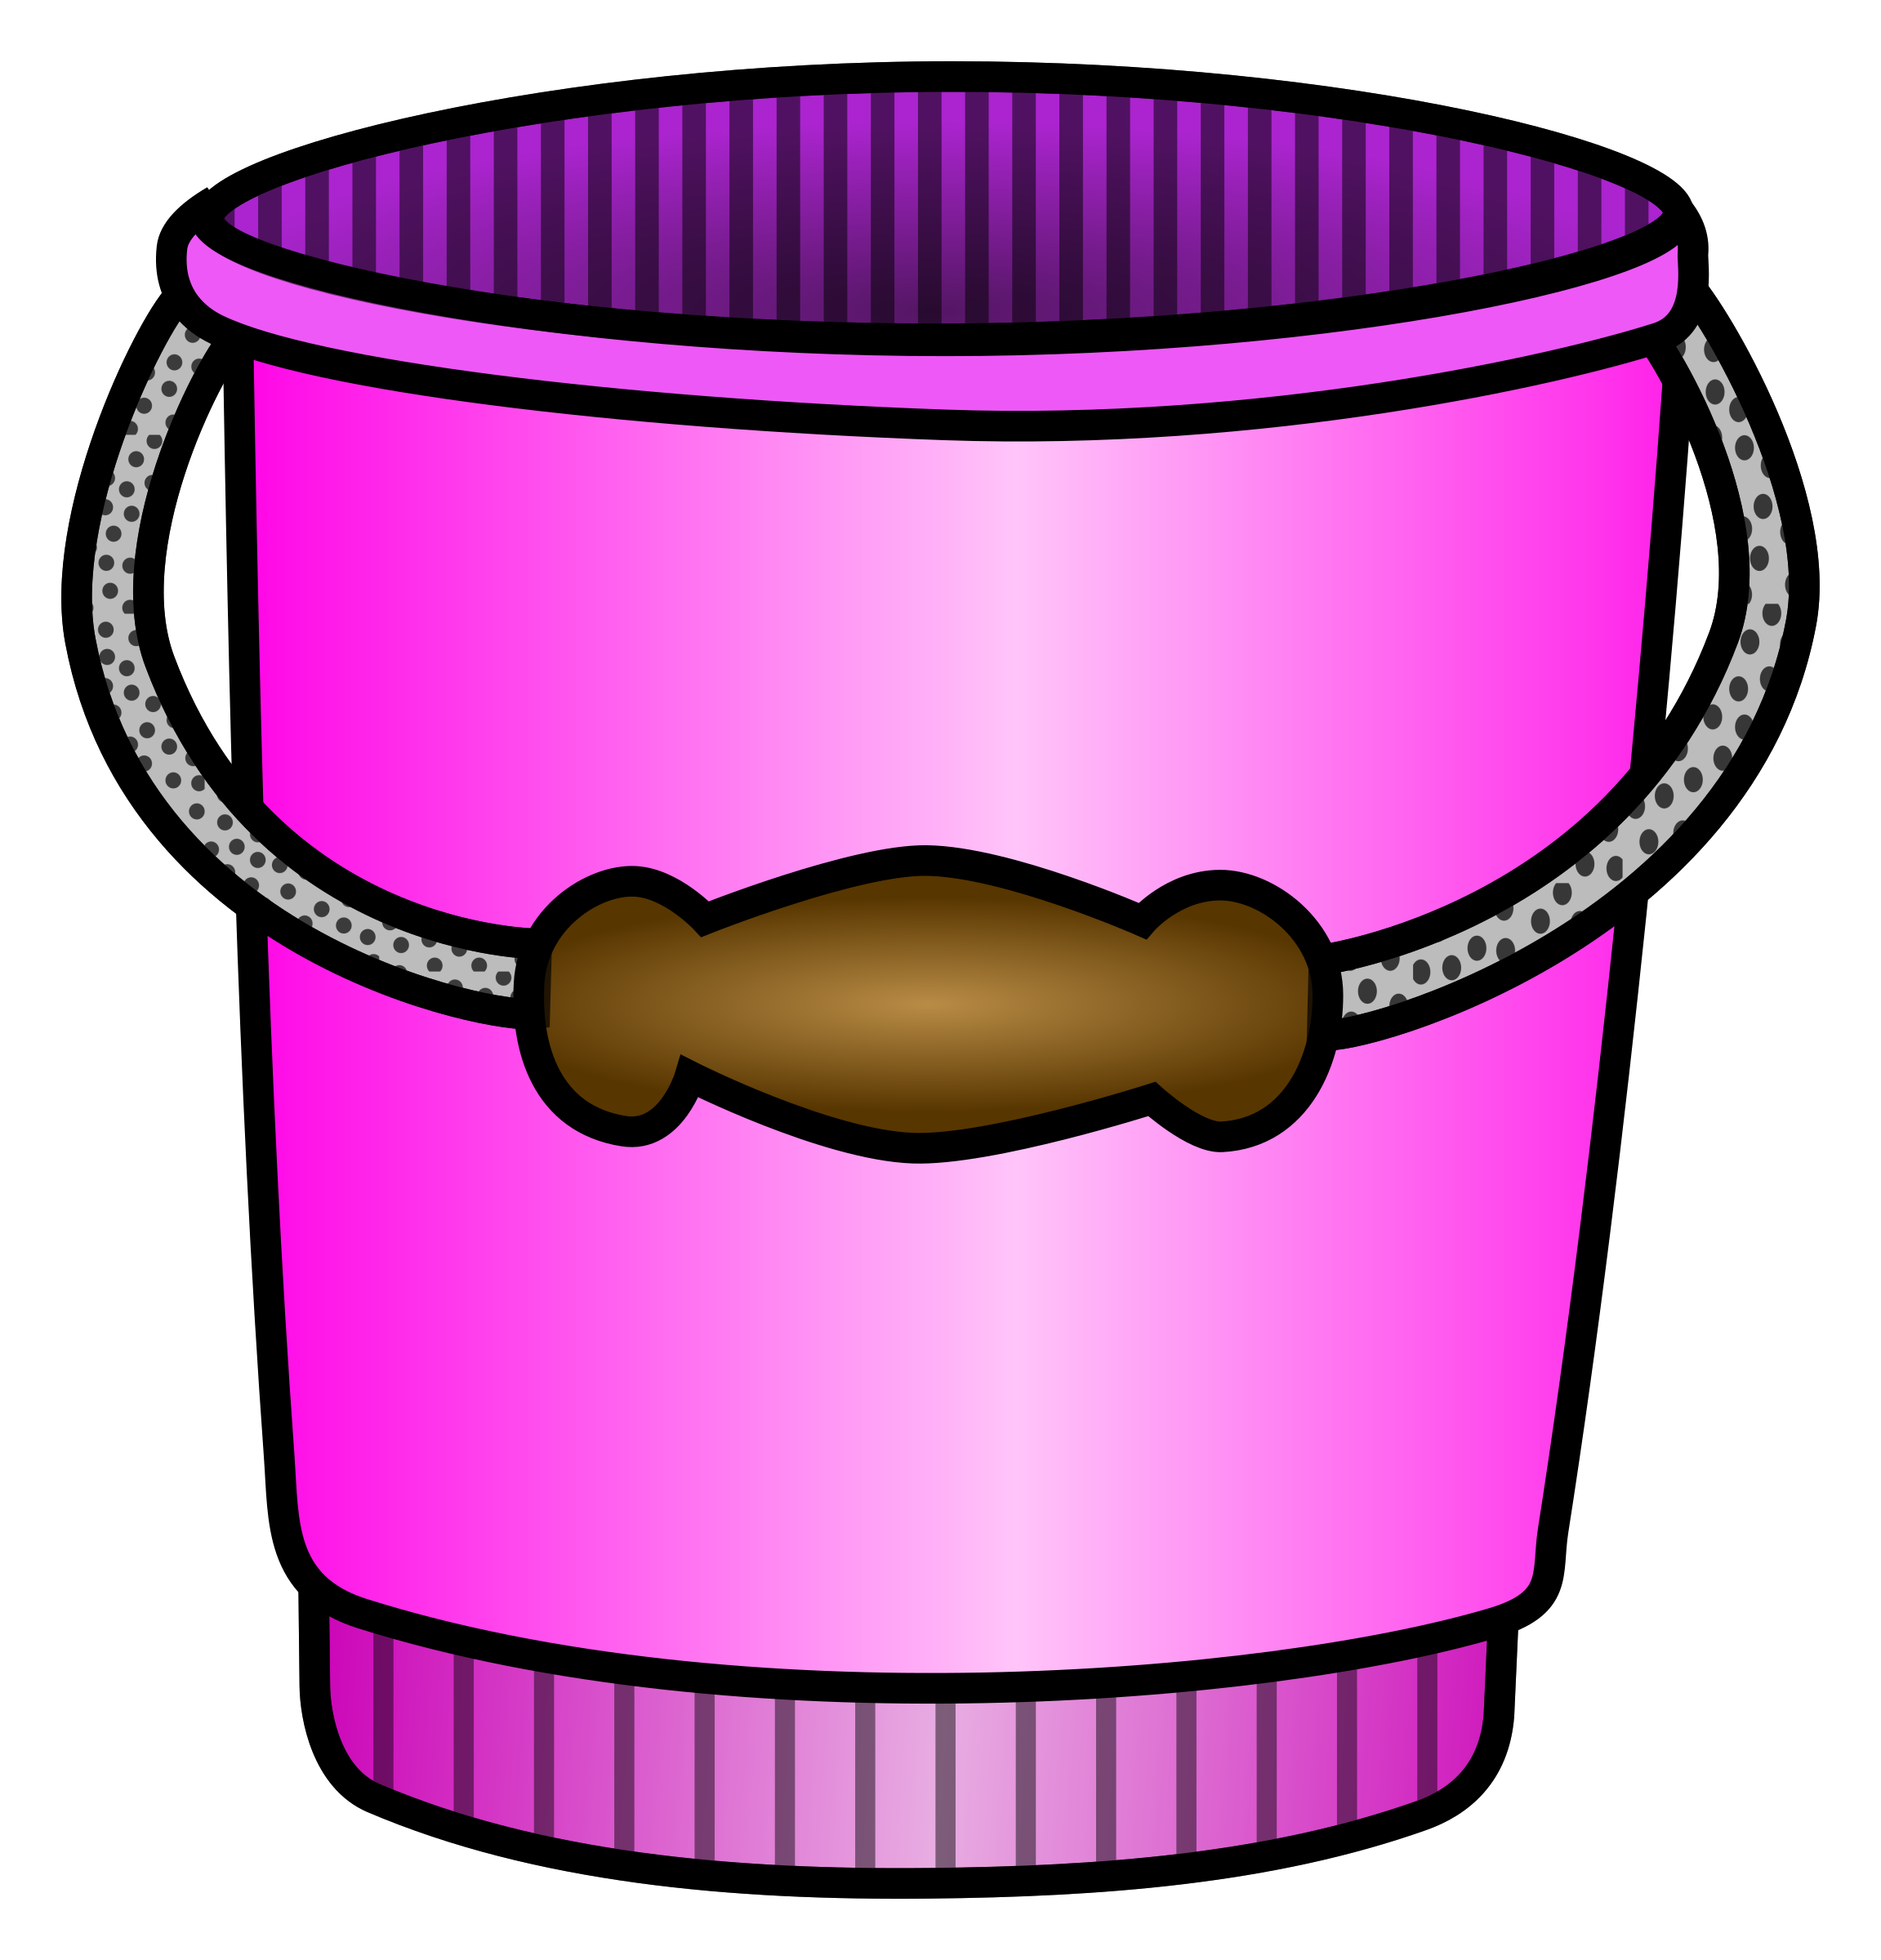 Bucket clipart printable. Coloured big image png